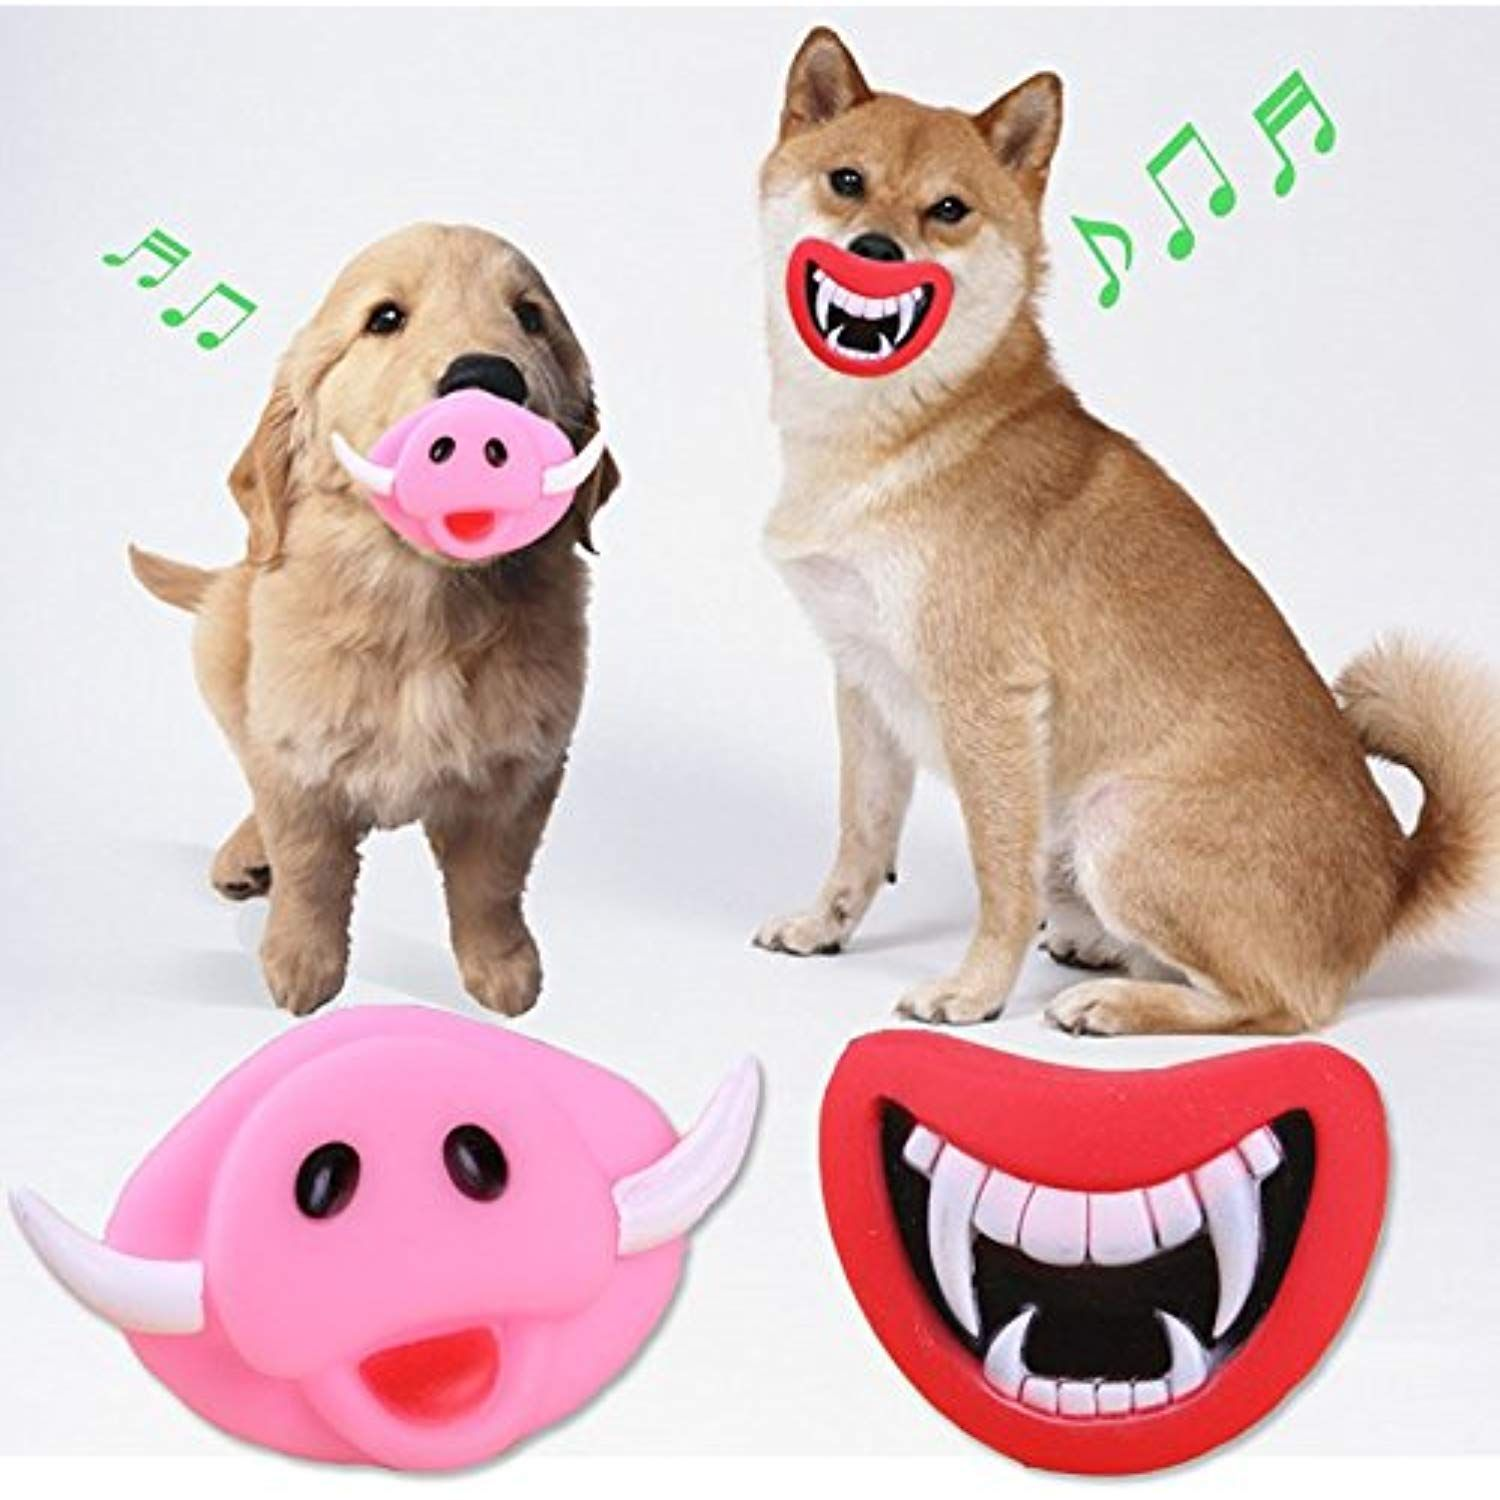 Funny Dog Toys Ciciia S Oinky And Fangy Dog Squeaky Toys Funny